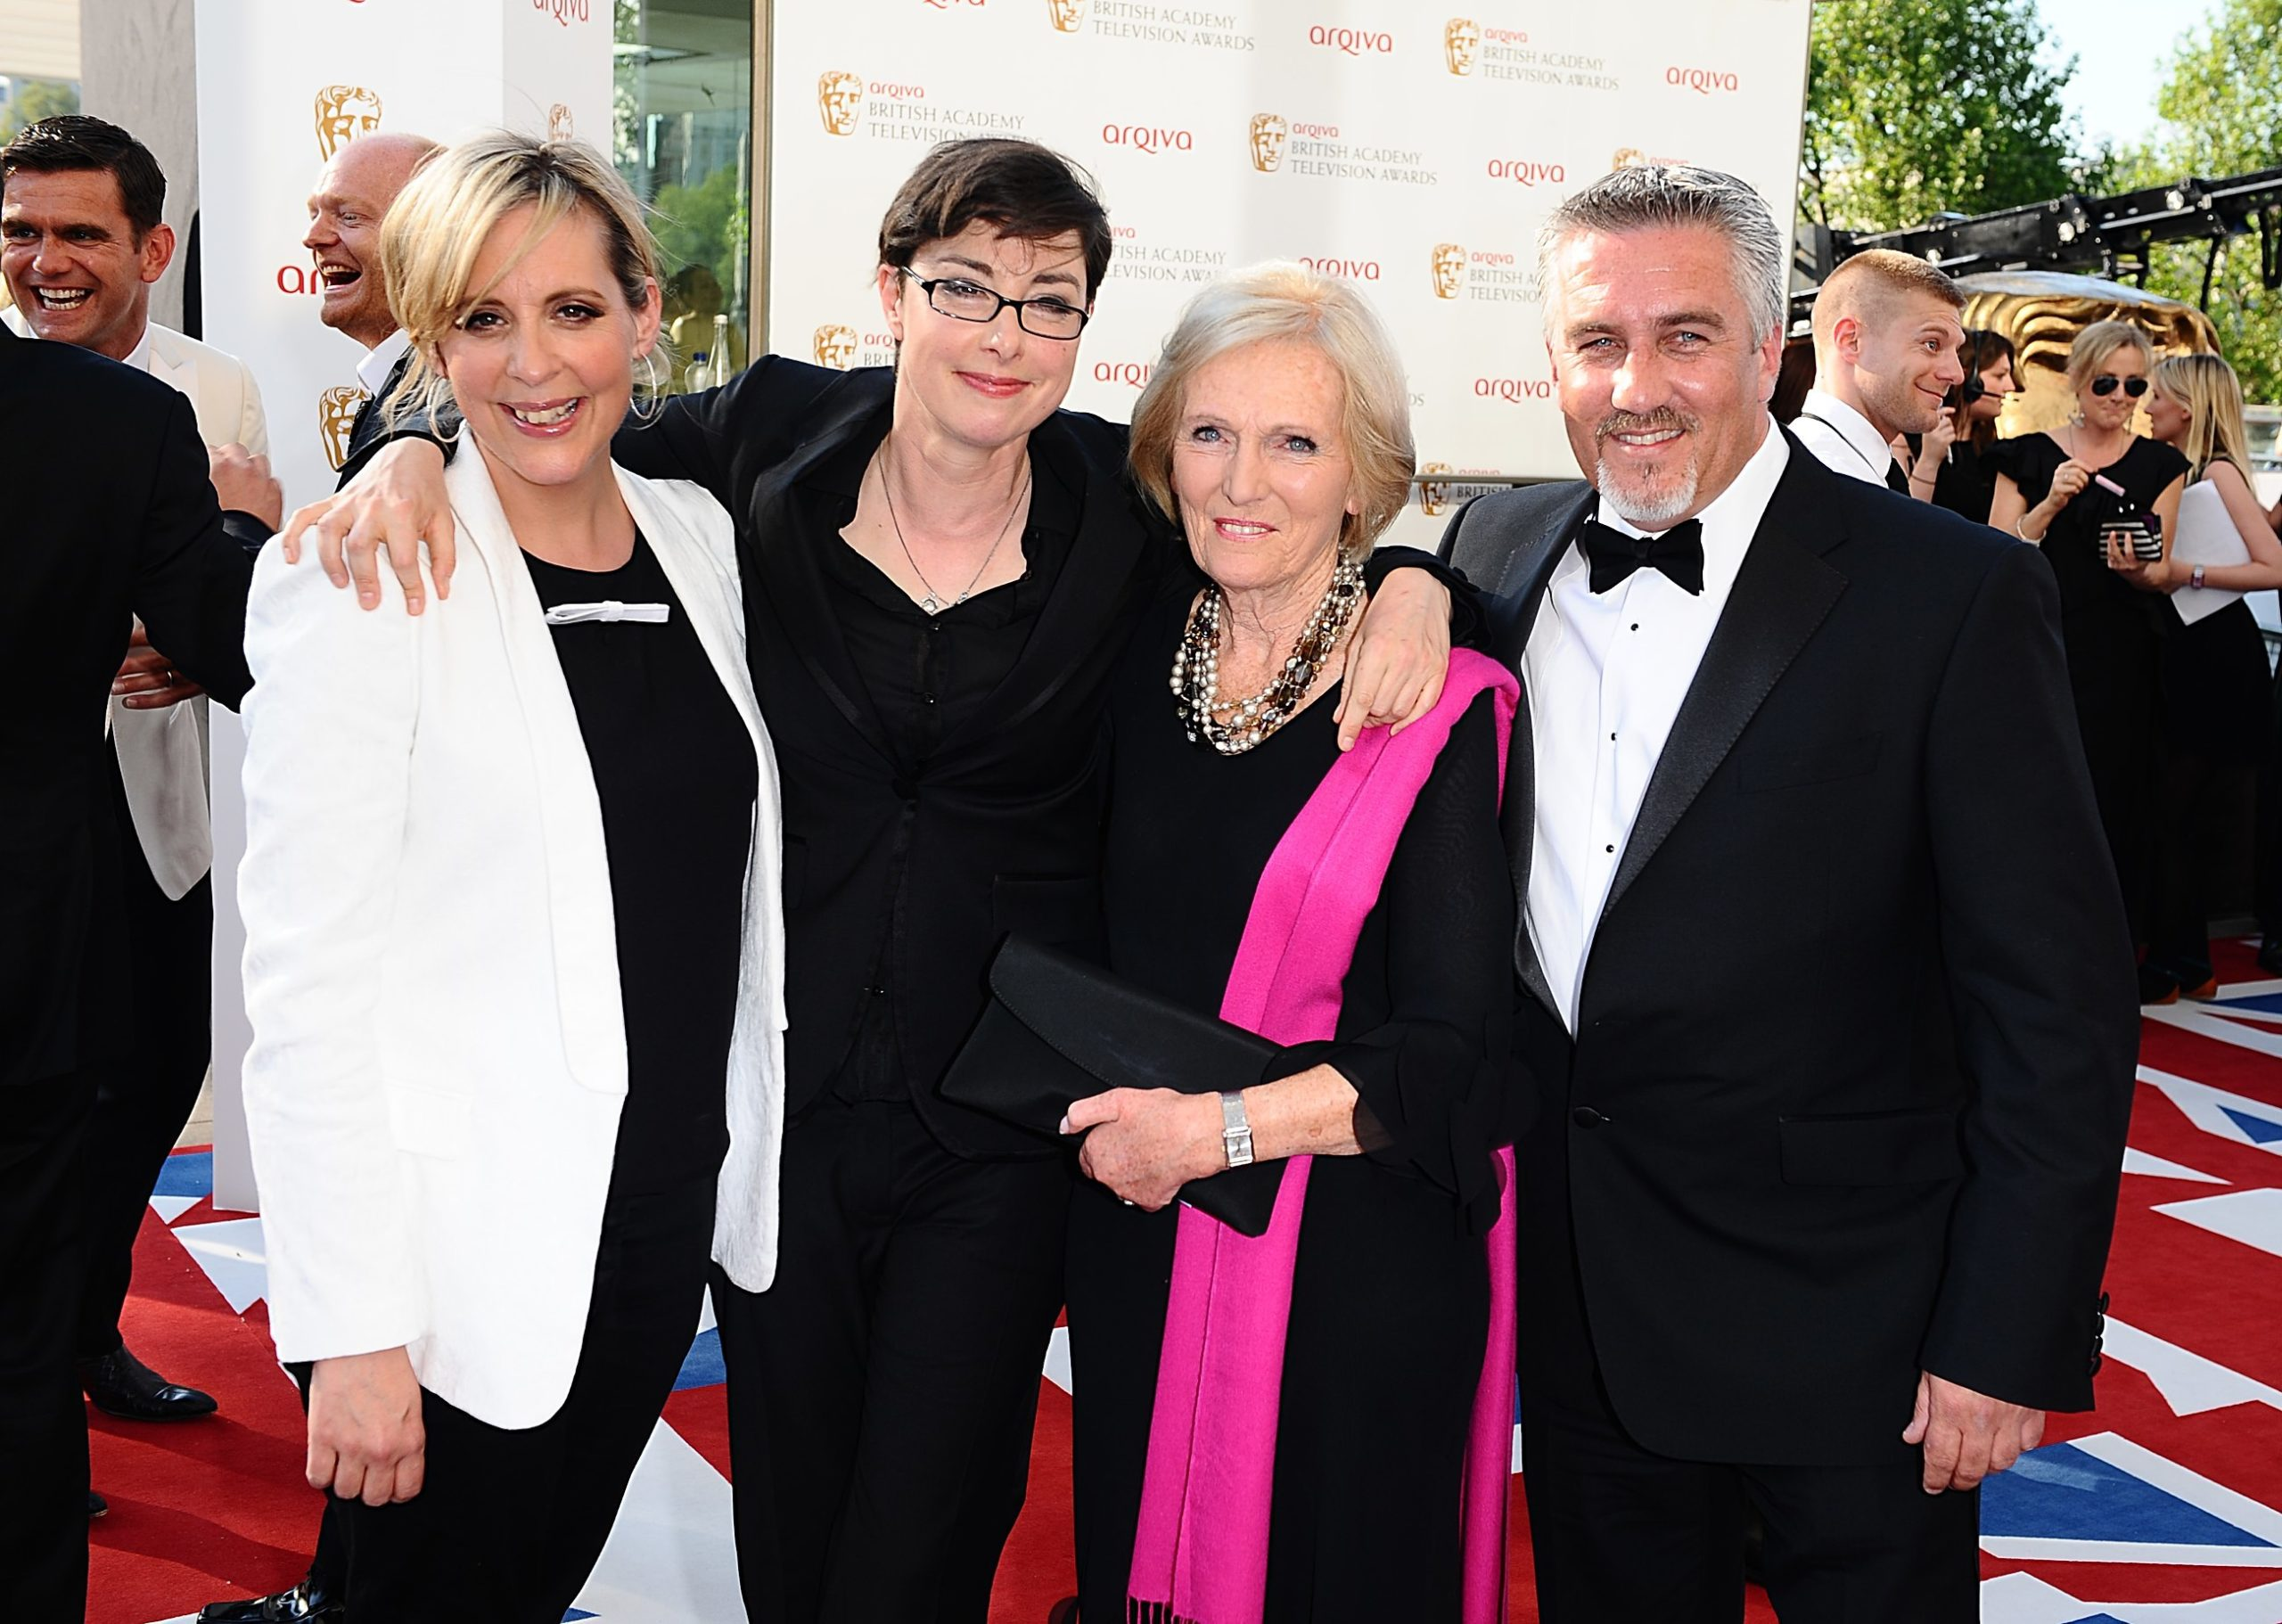 Mel and Sue Bake off